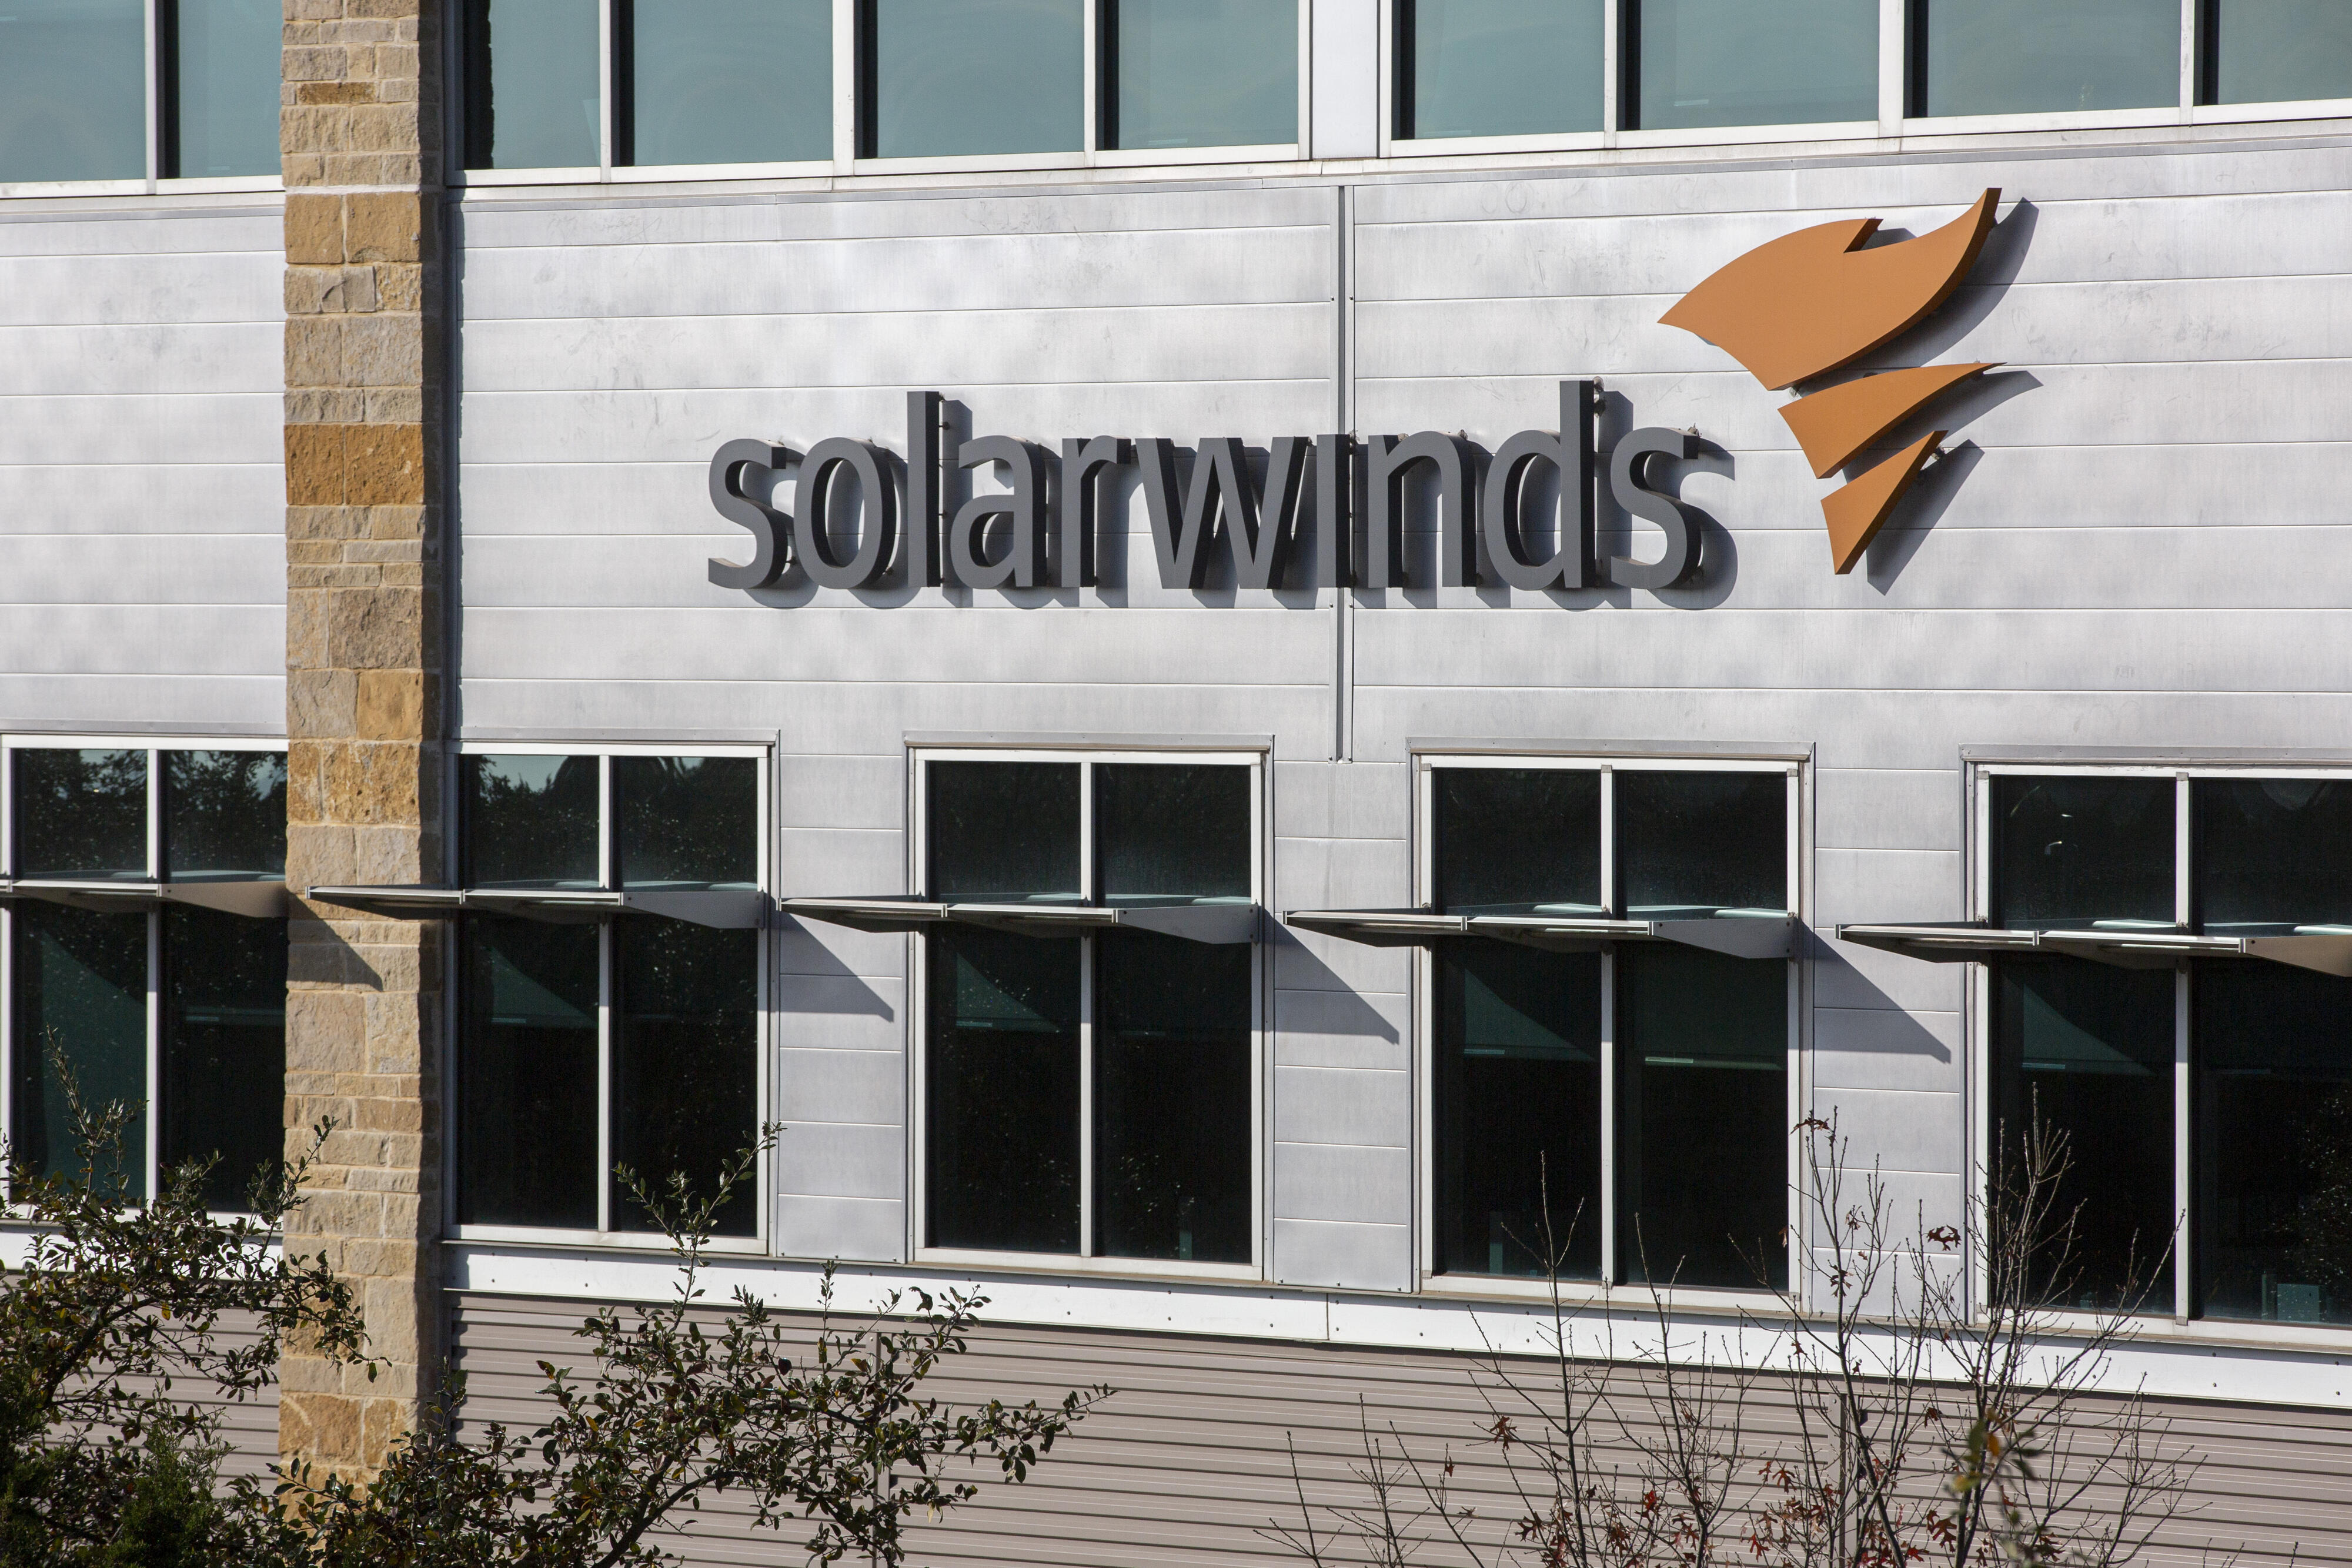 SolarWinds office building